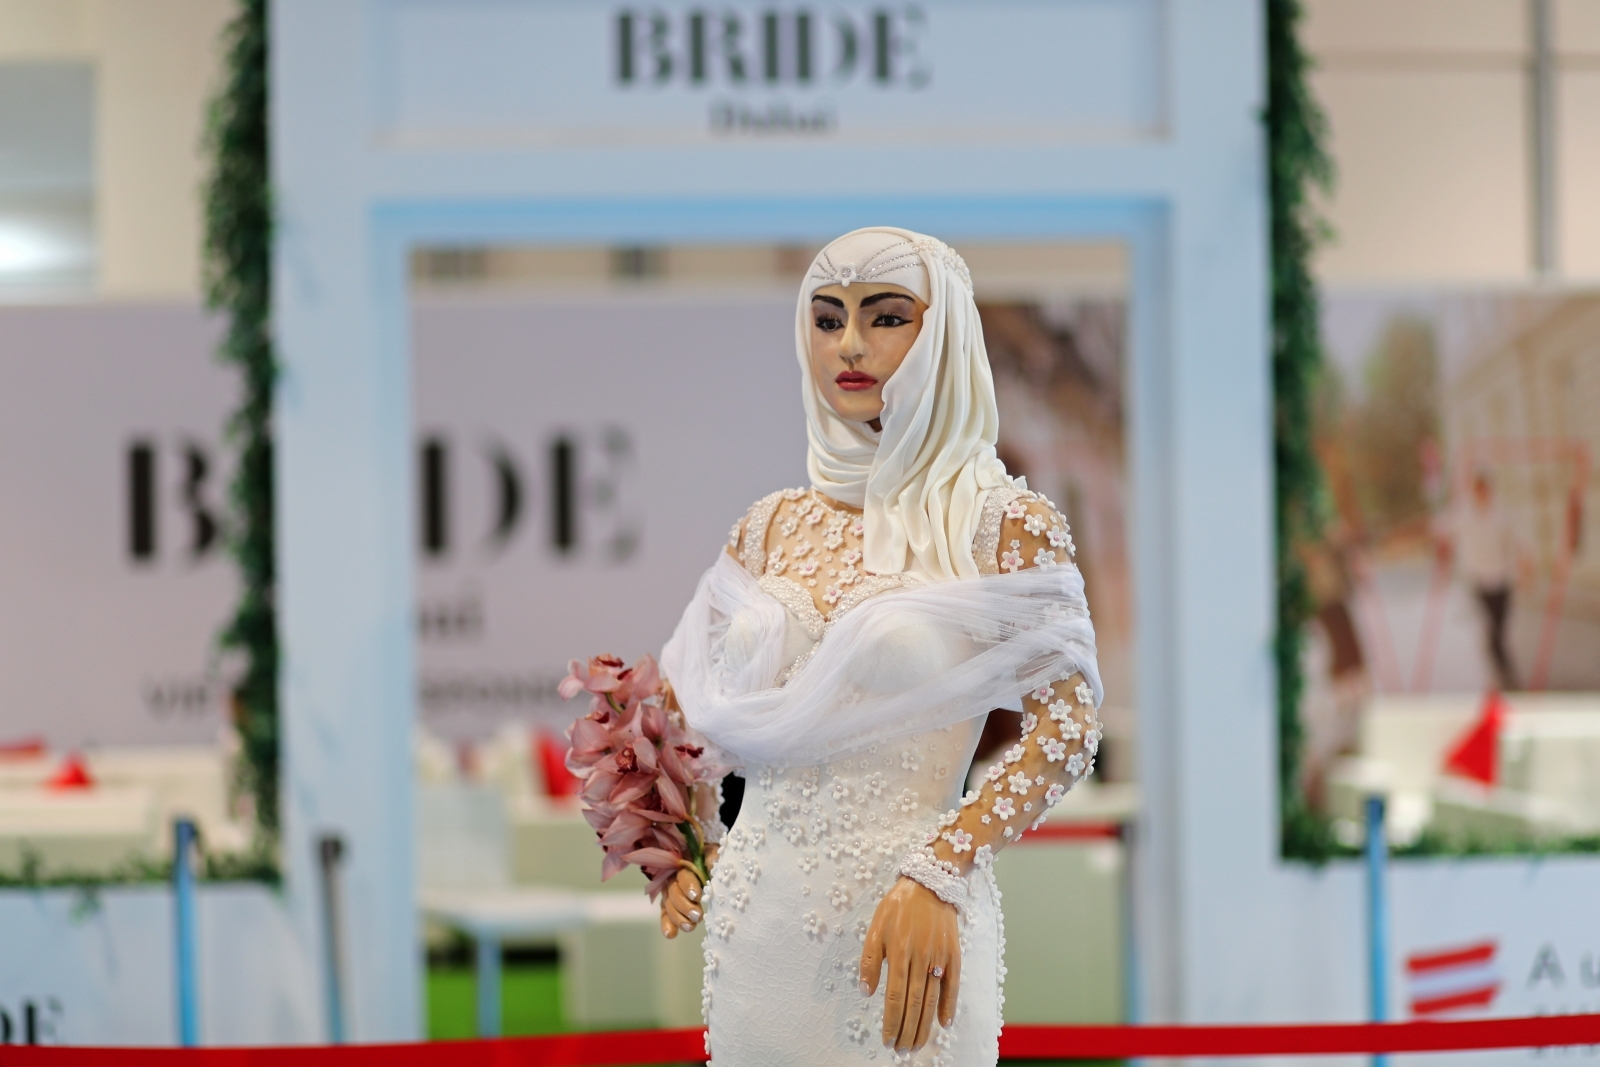 Million-Dollar Bride: Life-size chocolate and diamond wedding cake displayed at Bride Dubai